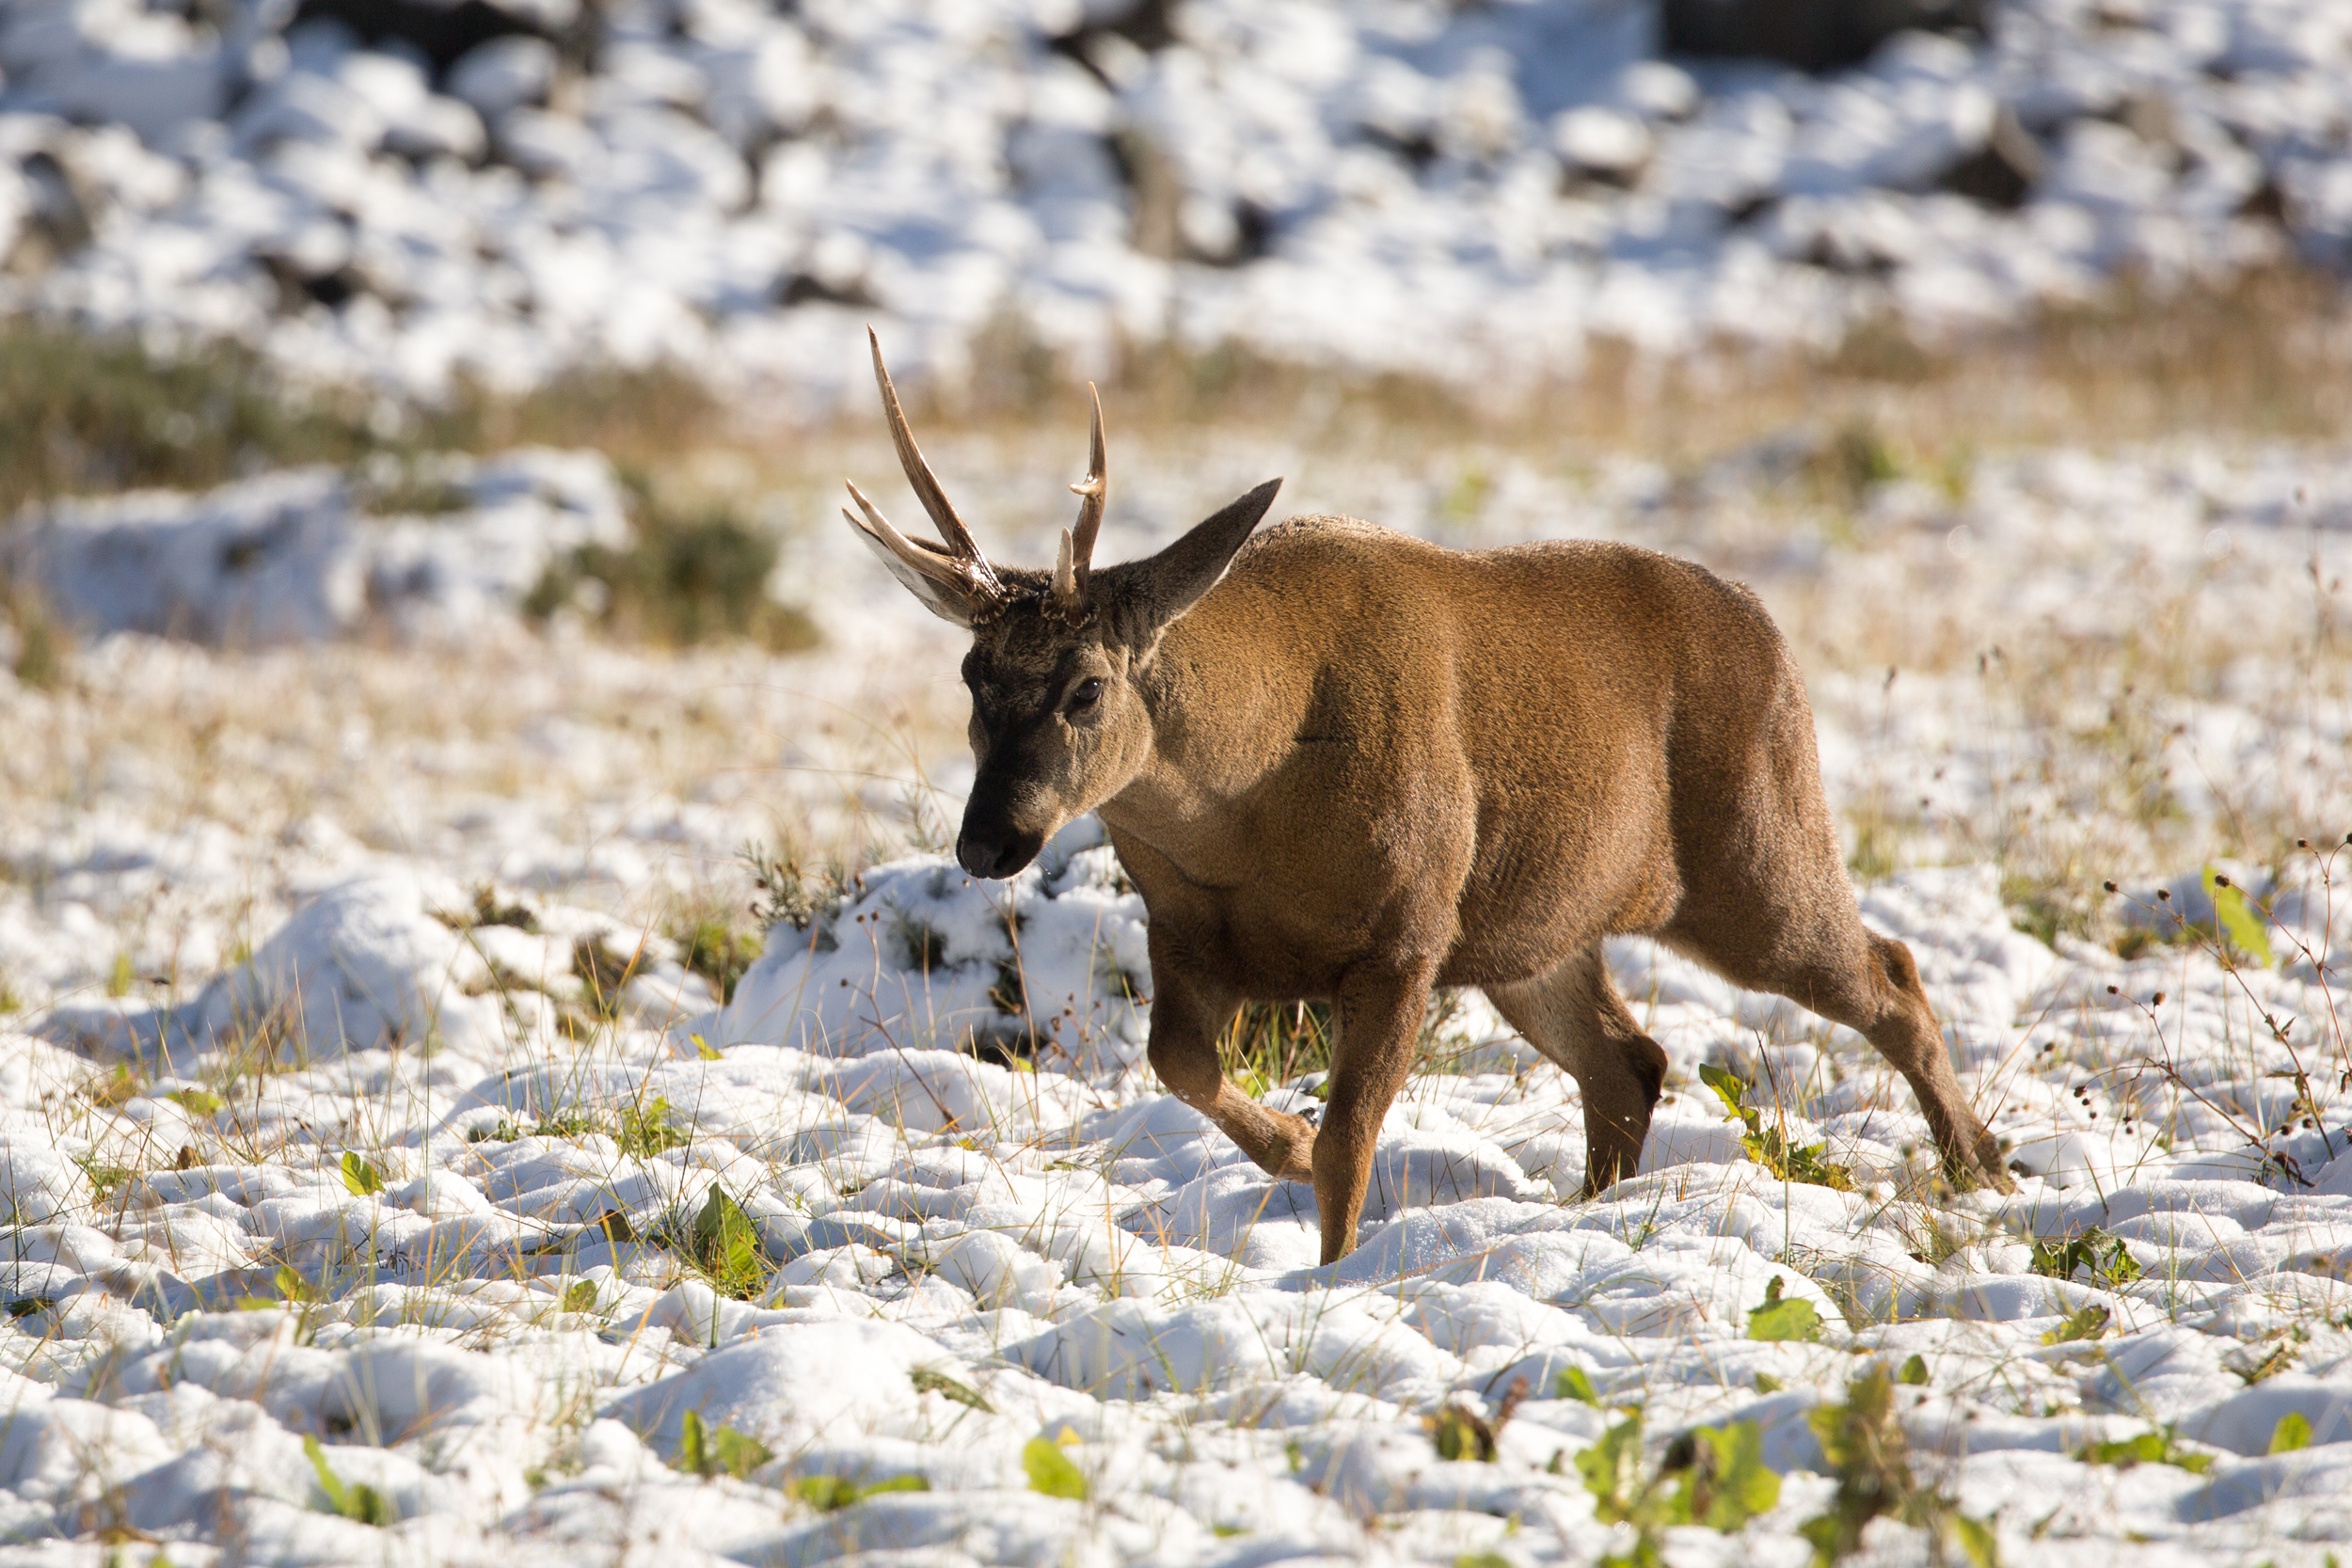 huemul (Hippocamelus bisulcus) - The huemul, or south Andean deer, is an extremely rare species of deer native to Chilean Patagonia and Argentina. With an estimated population of 1,500 left in the wild, the future Patagonia National Park is working to ensure their habitat remains conserved.